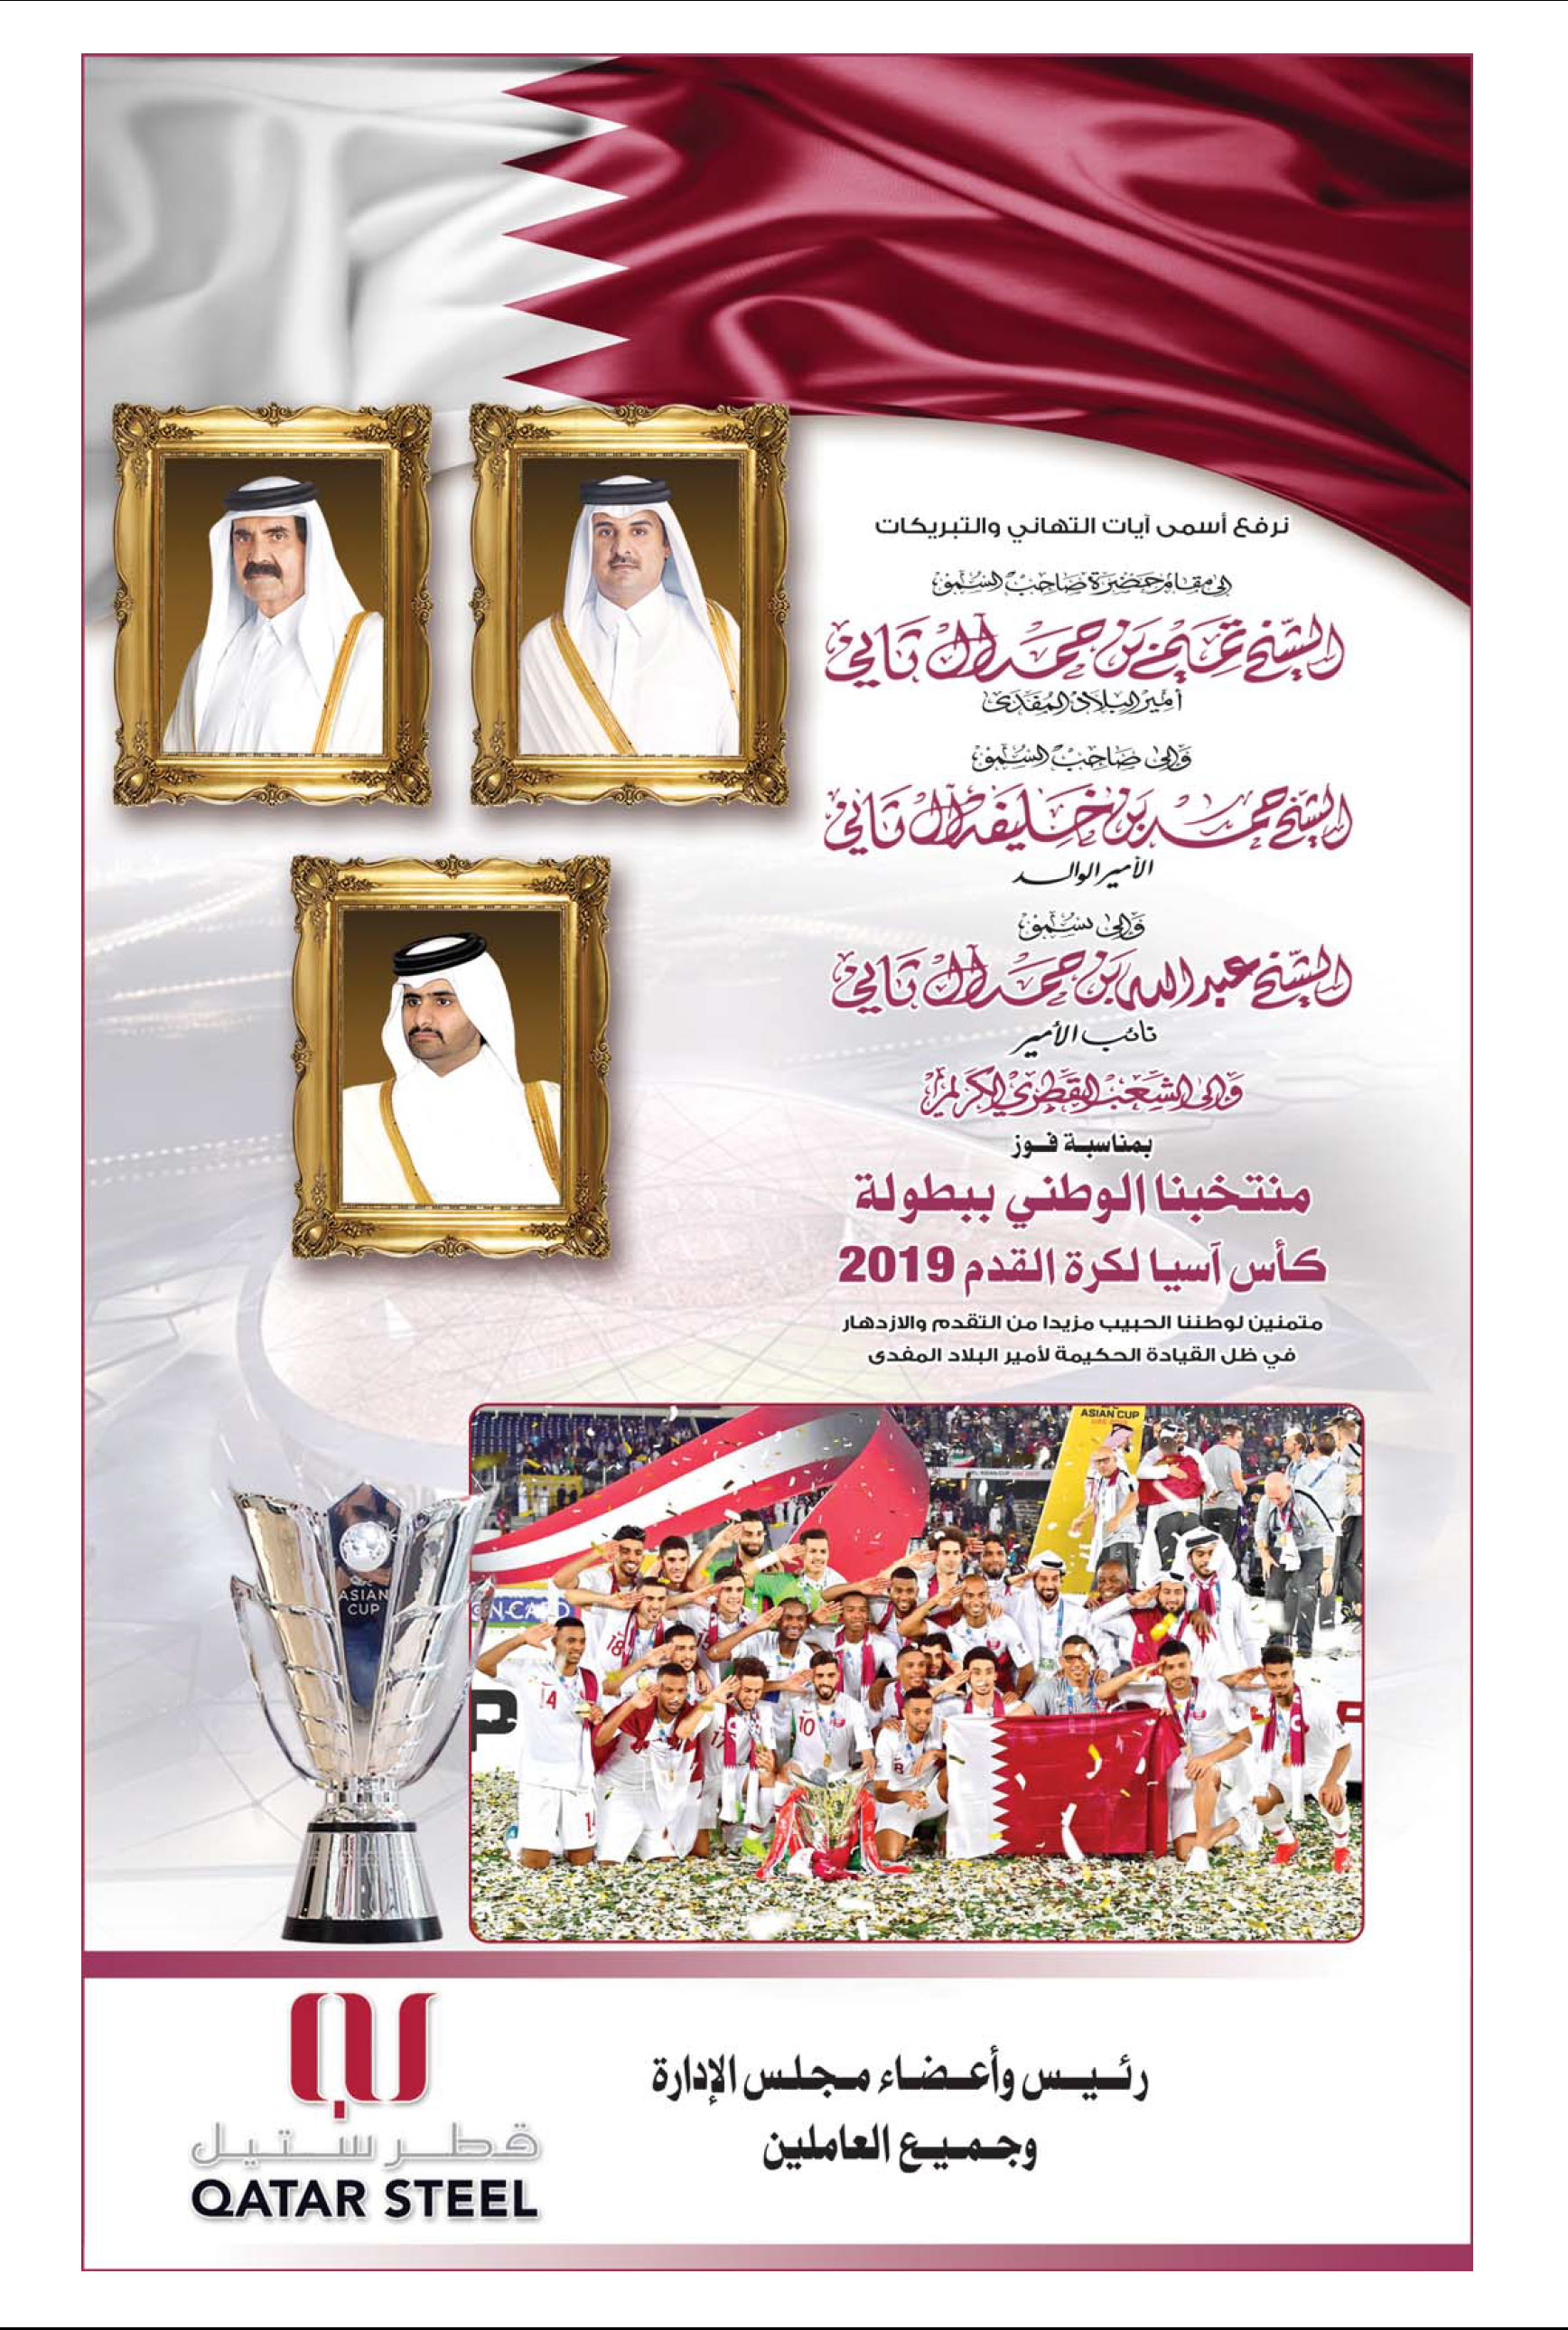 Qatar Steel Congratulation in Al Watan